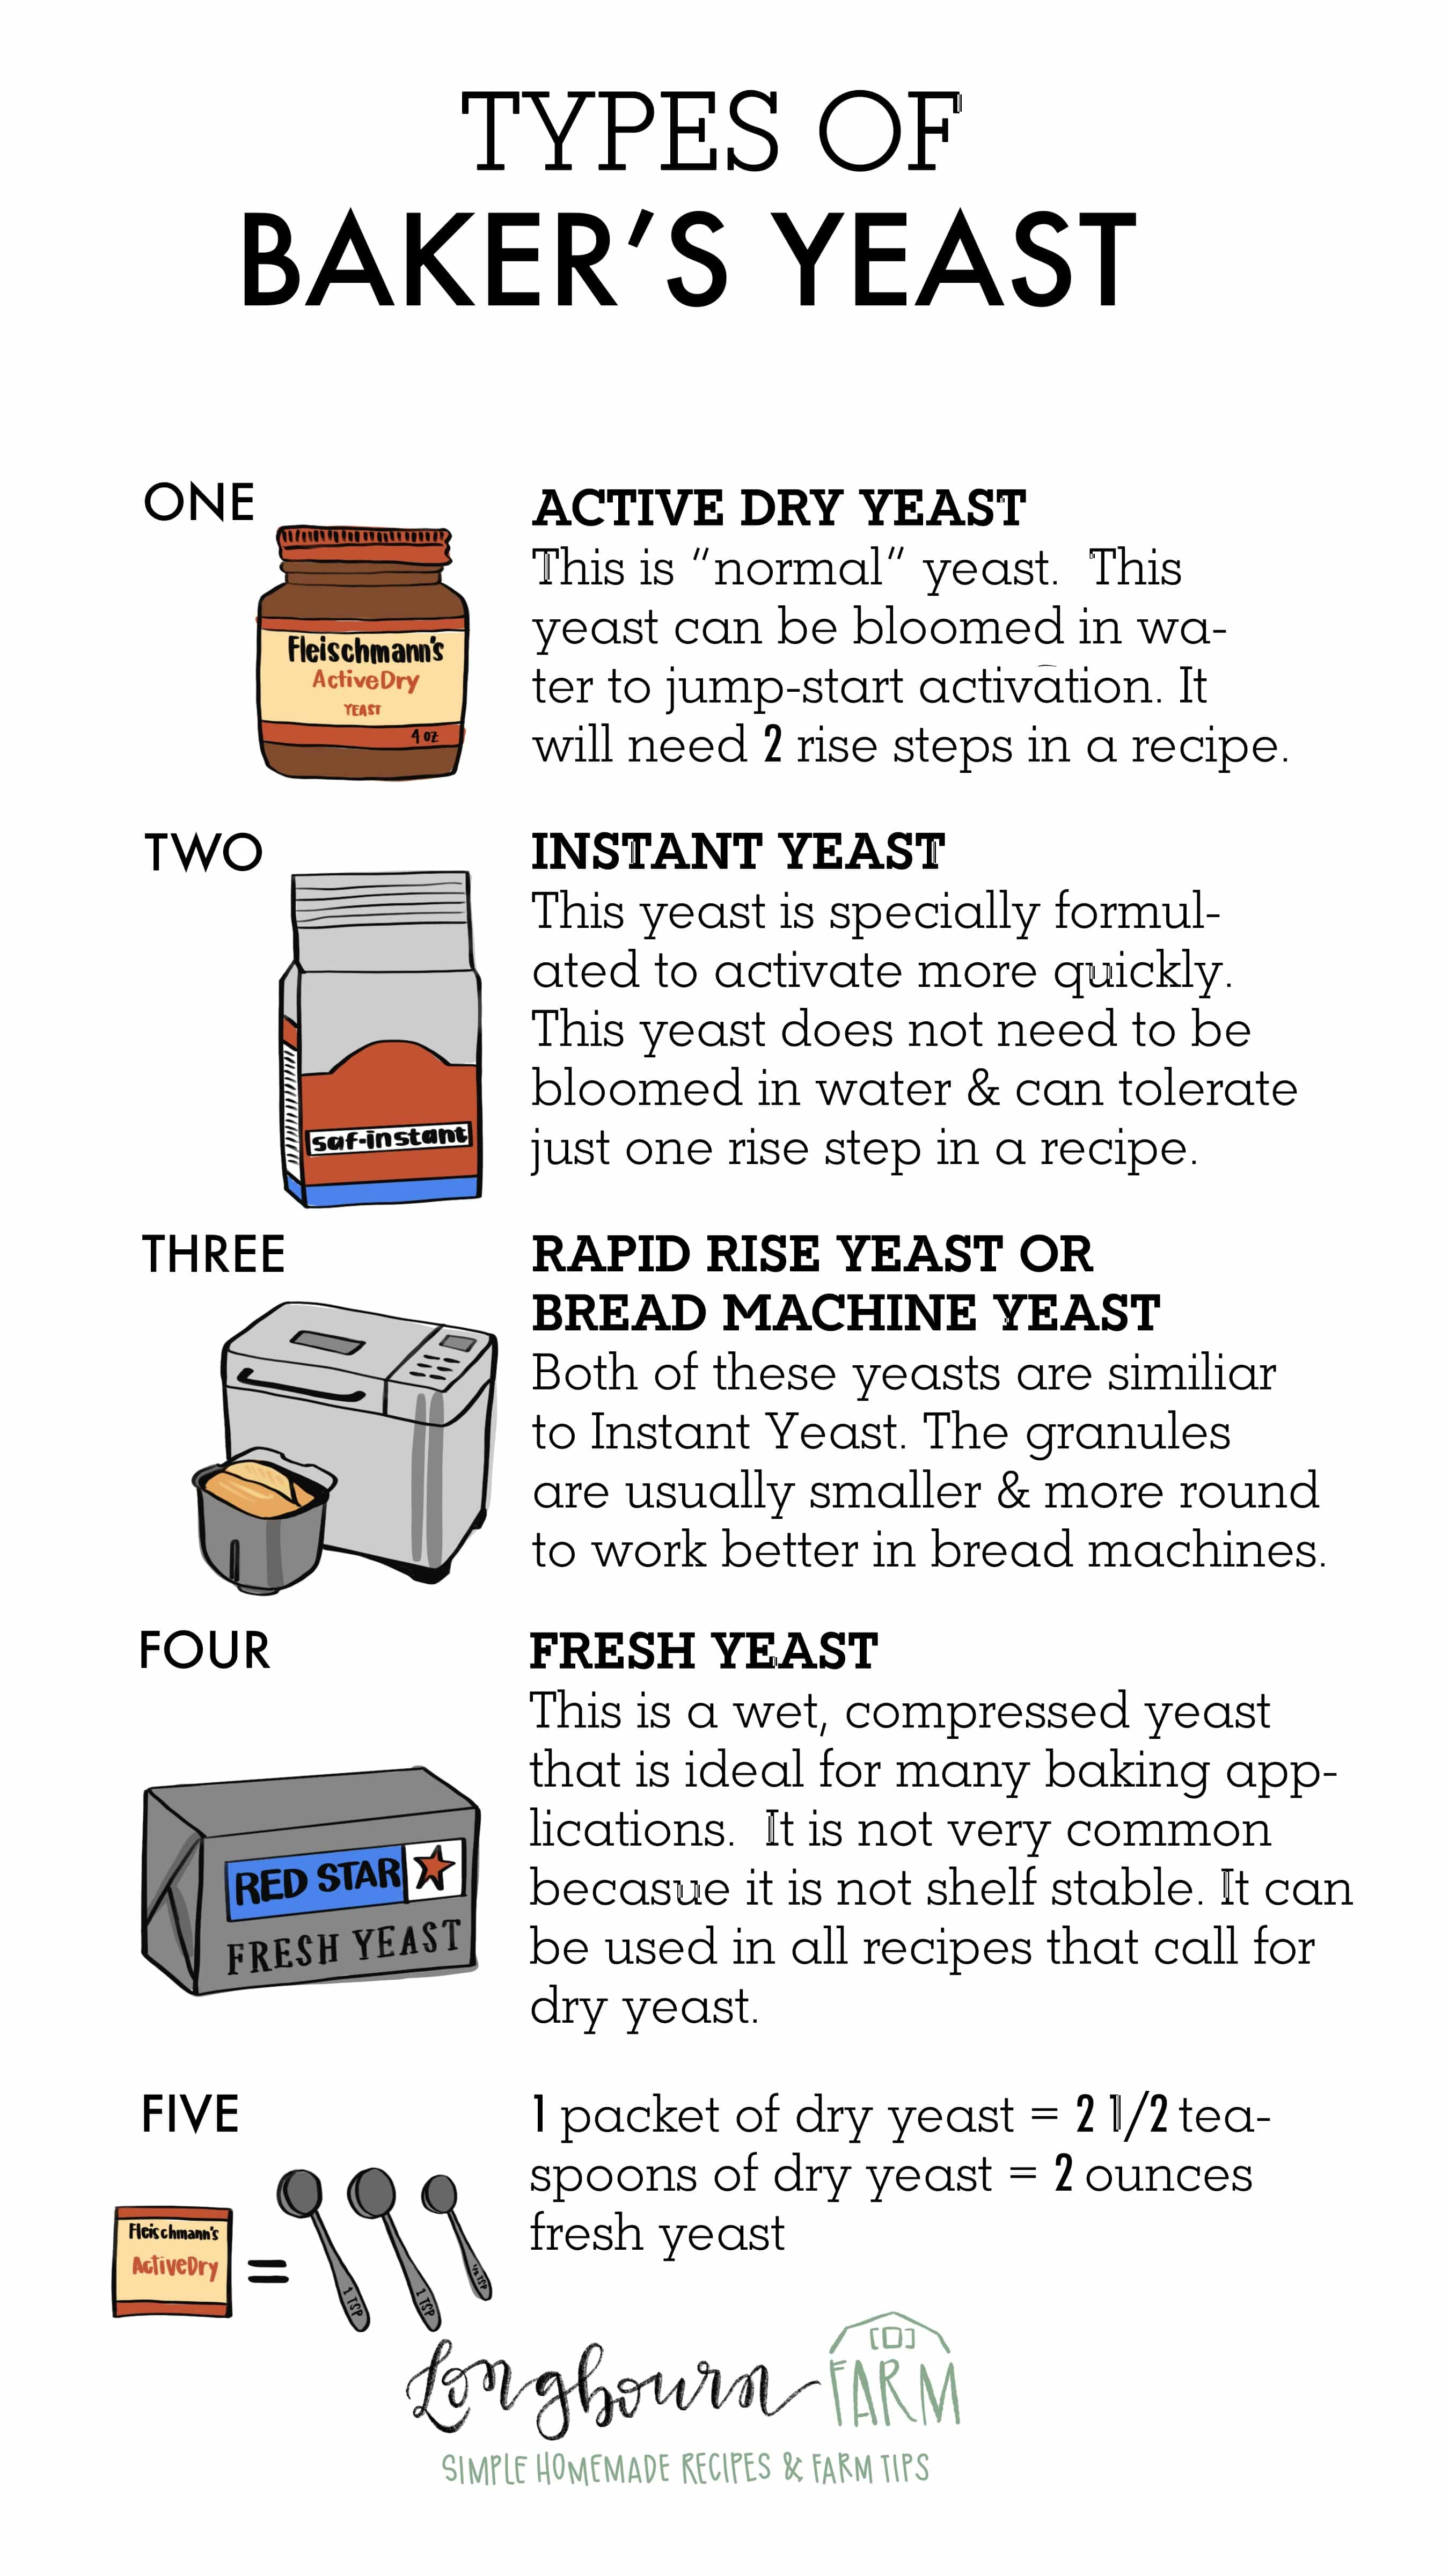 Do you know the different types of baker's yeast and when to use them? Read this post to know exactly what type of yeast you should use and when! #yeast #yeastrecipes #yeastbread #activedryyeast #instantyeast #whatisyeast #bakingyeast #yeastpacket